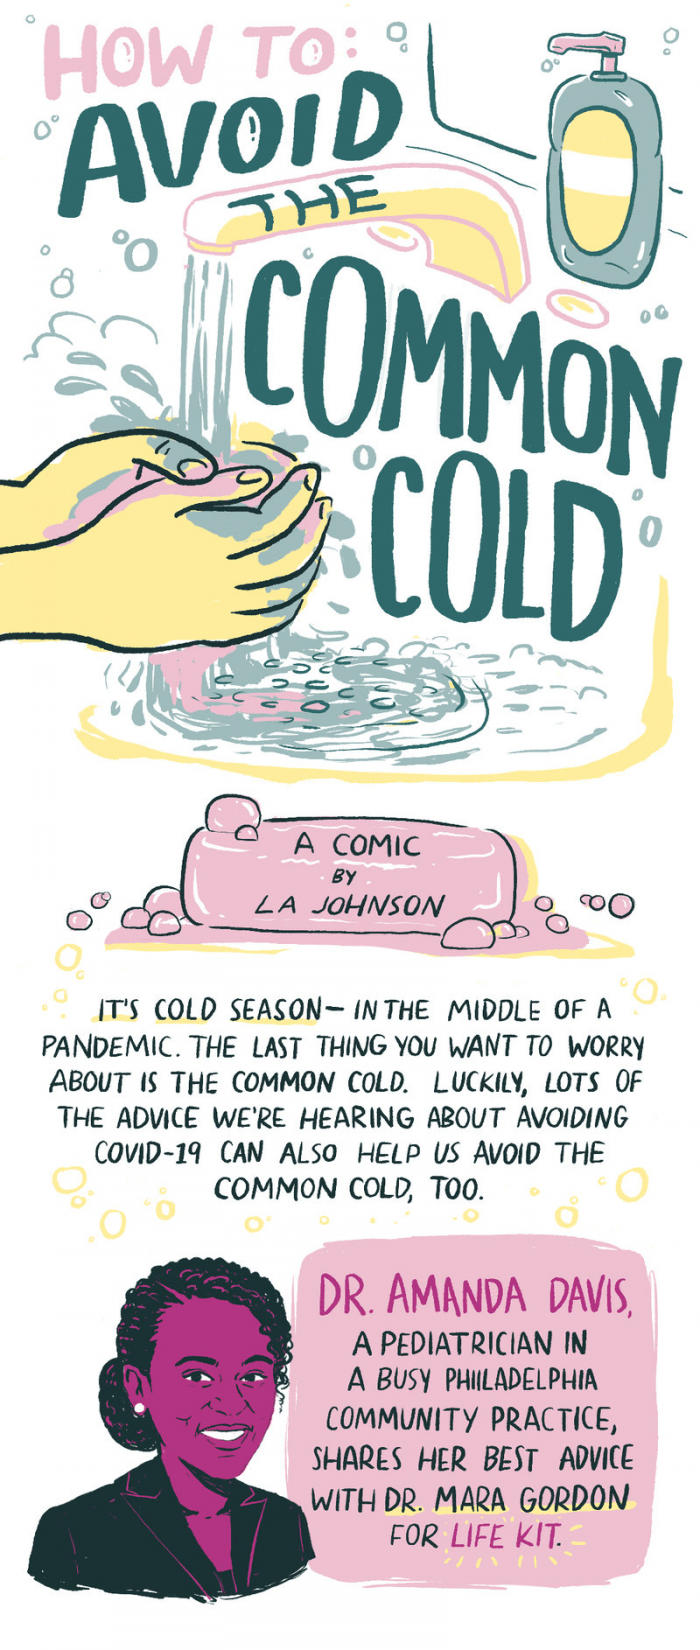 How to avoid common cold